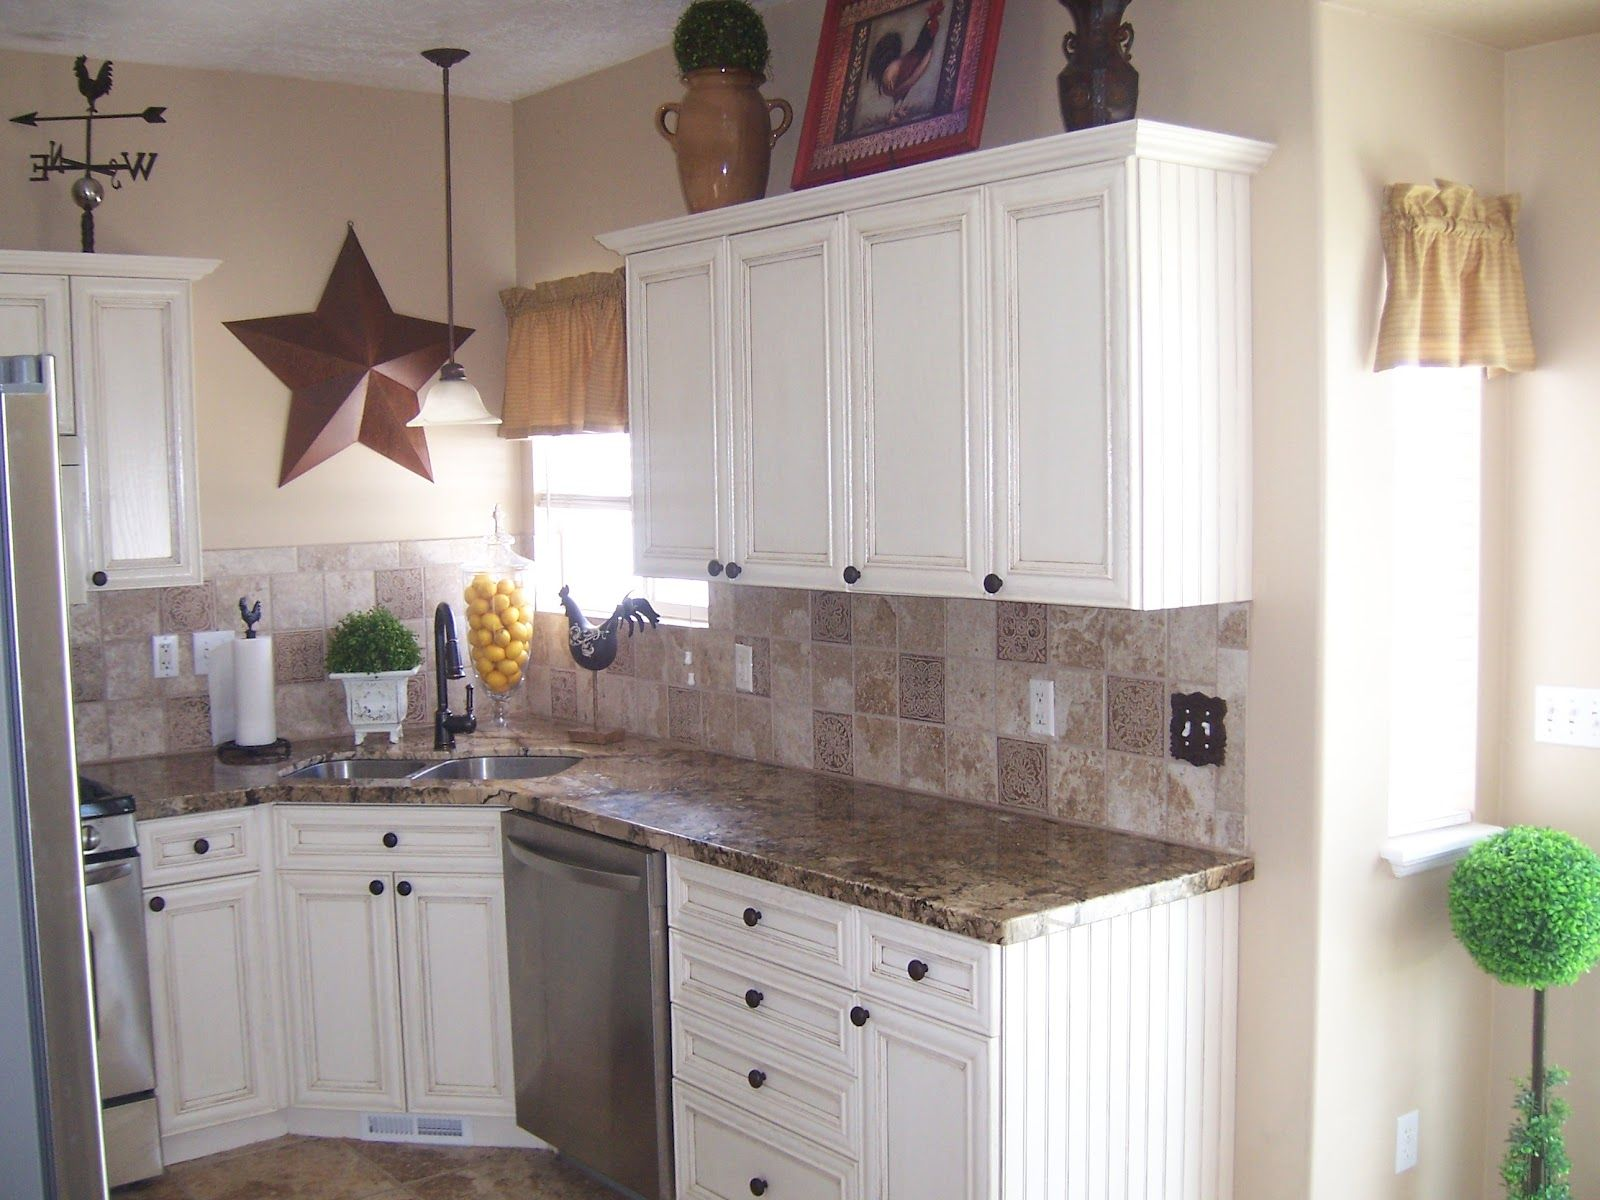 kitchens with white cabinets white cabinets with laminate countertops Laminate counter tops were replaced with a beautiful granite